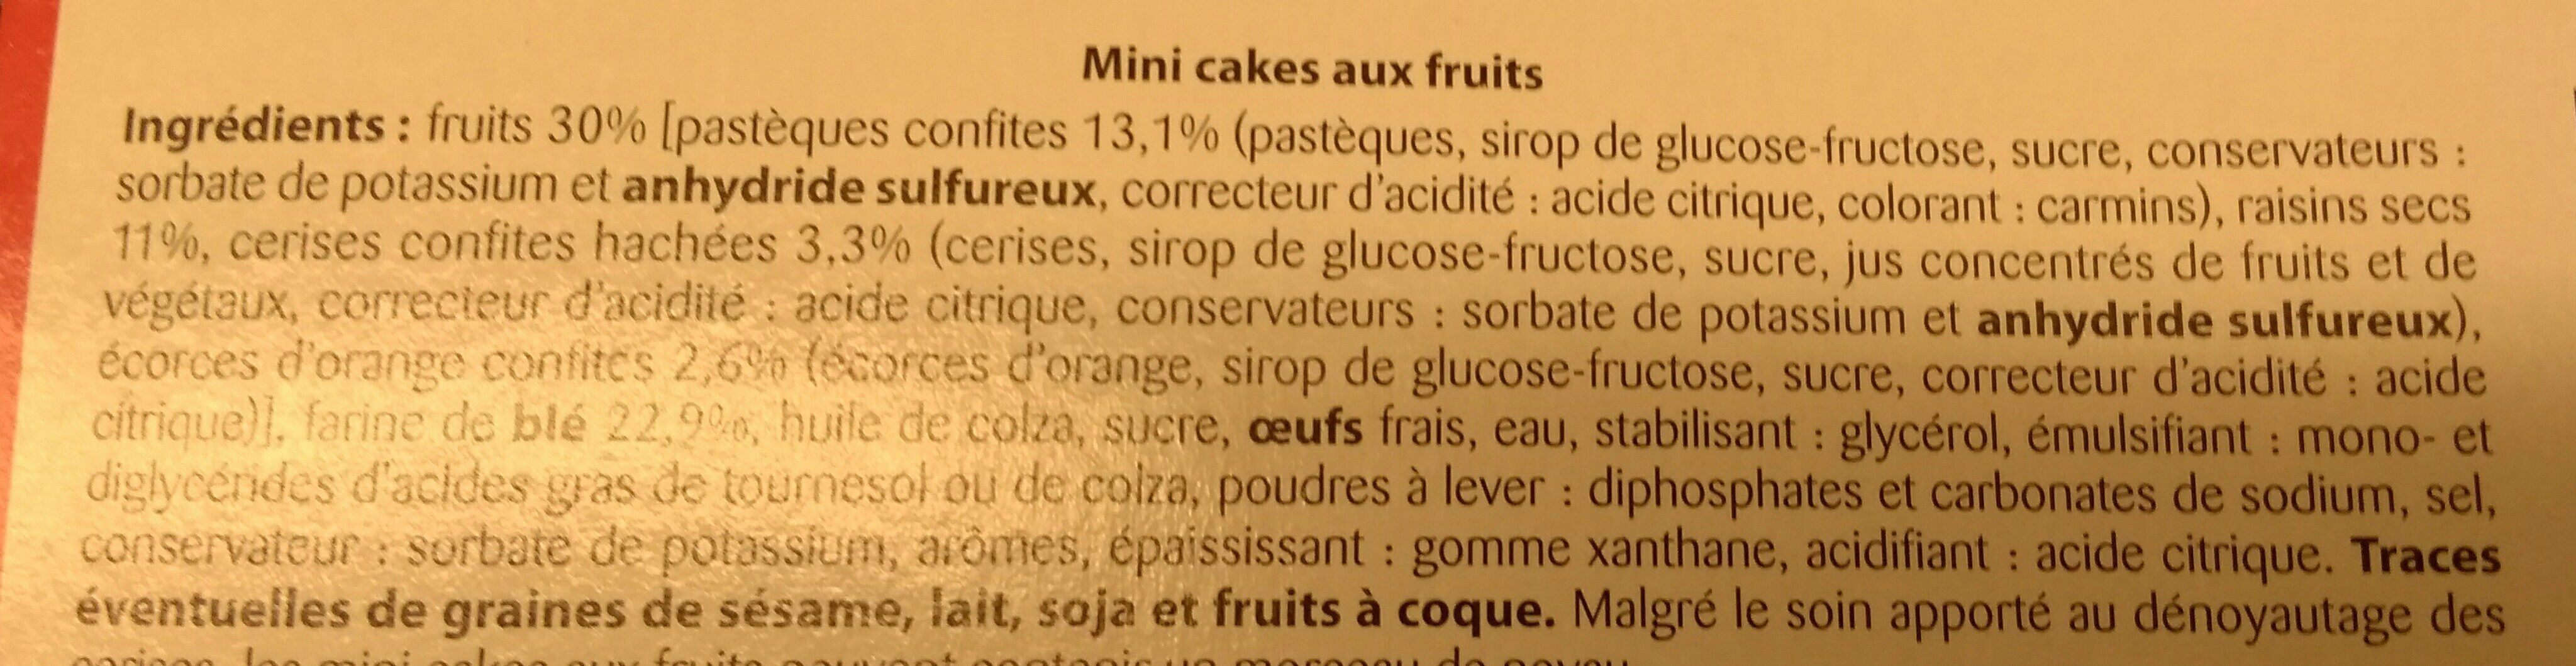 Mini cakes aux fruits - Ingredients - fr